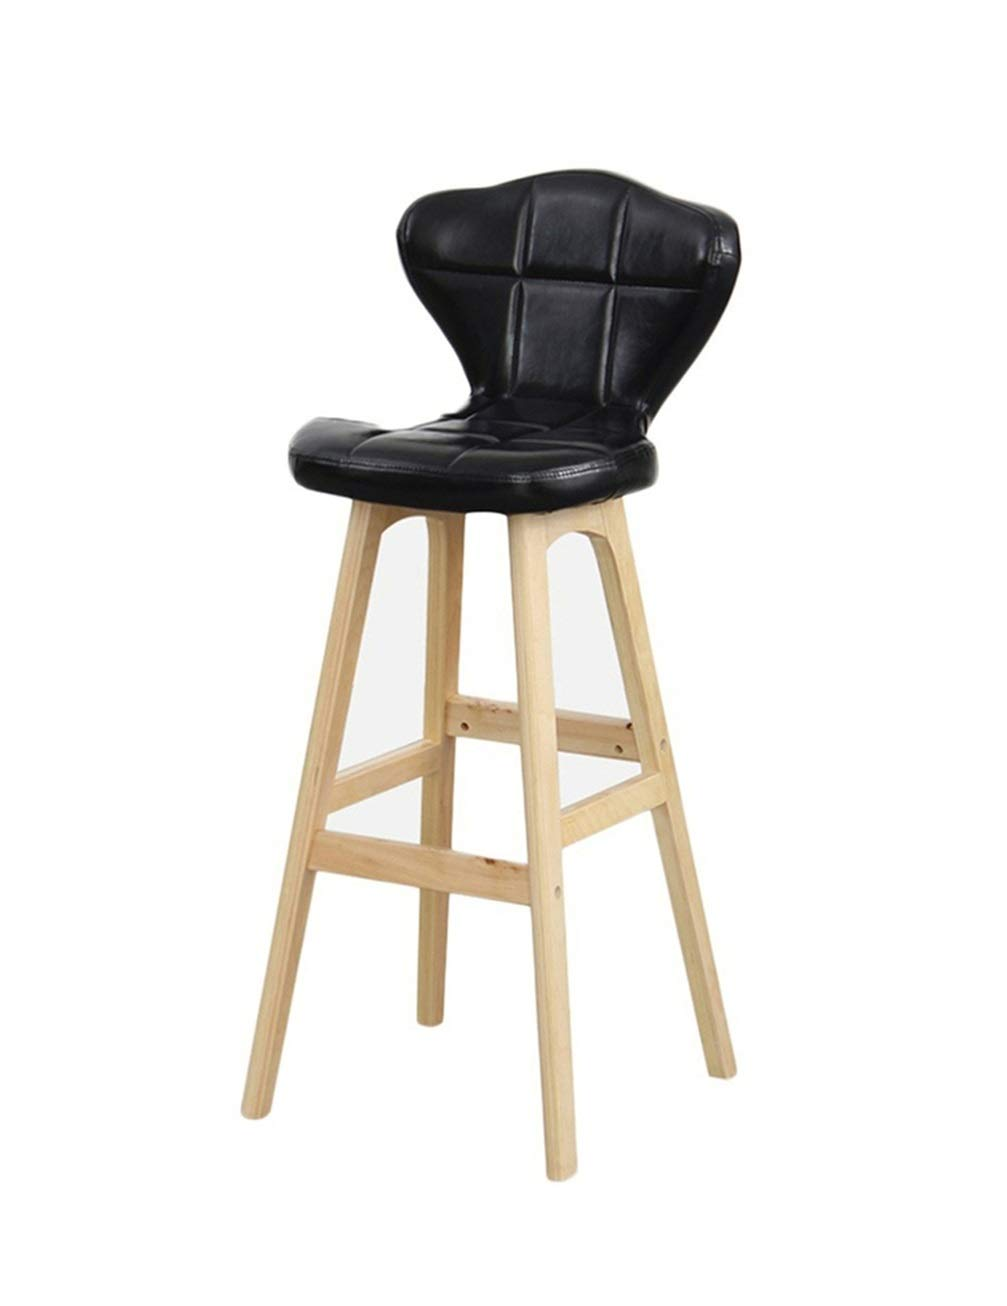 Wpjpzwj777 Bar Chair with Backrest, PU Leather + Wooden Legs, Long Service Life, Nordic Minimalist Design, Suitable for All Occasions, There are Many Styles to Choose from (Color : 3) by Wpjpzwj777